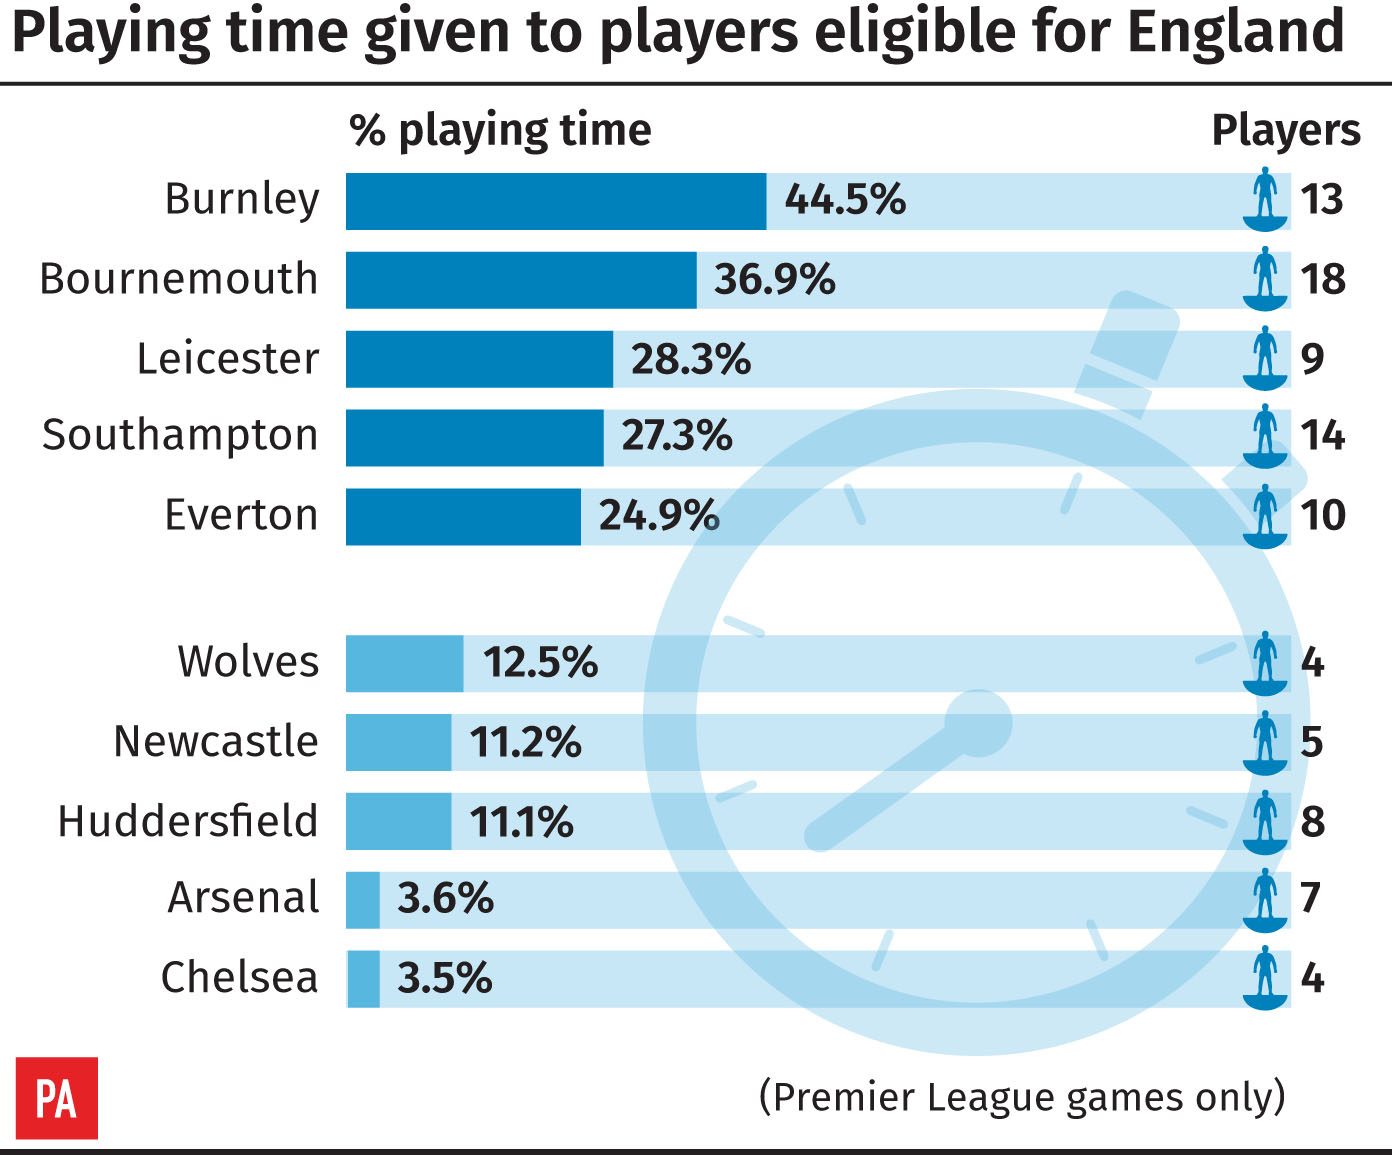 Premier League 2018-19 playing time for England-eligible players